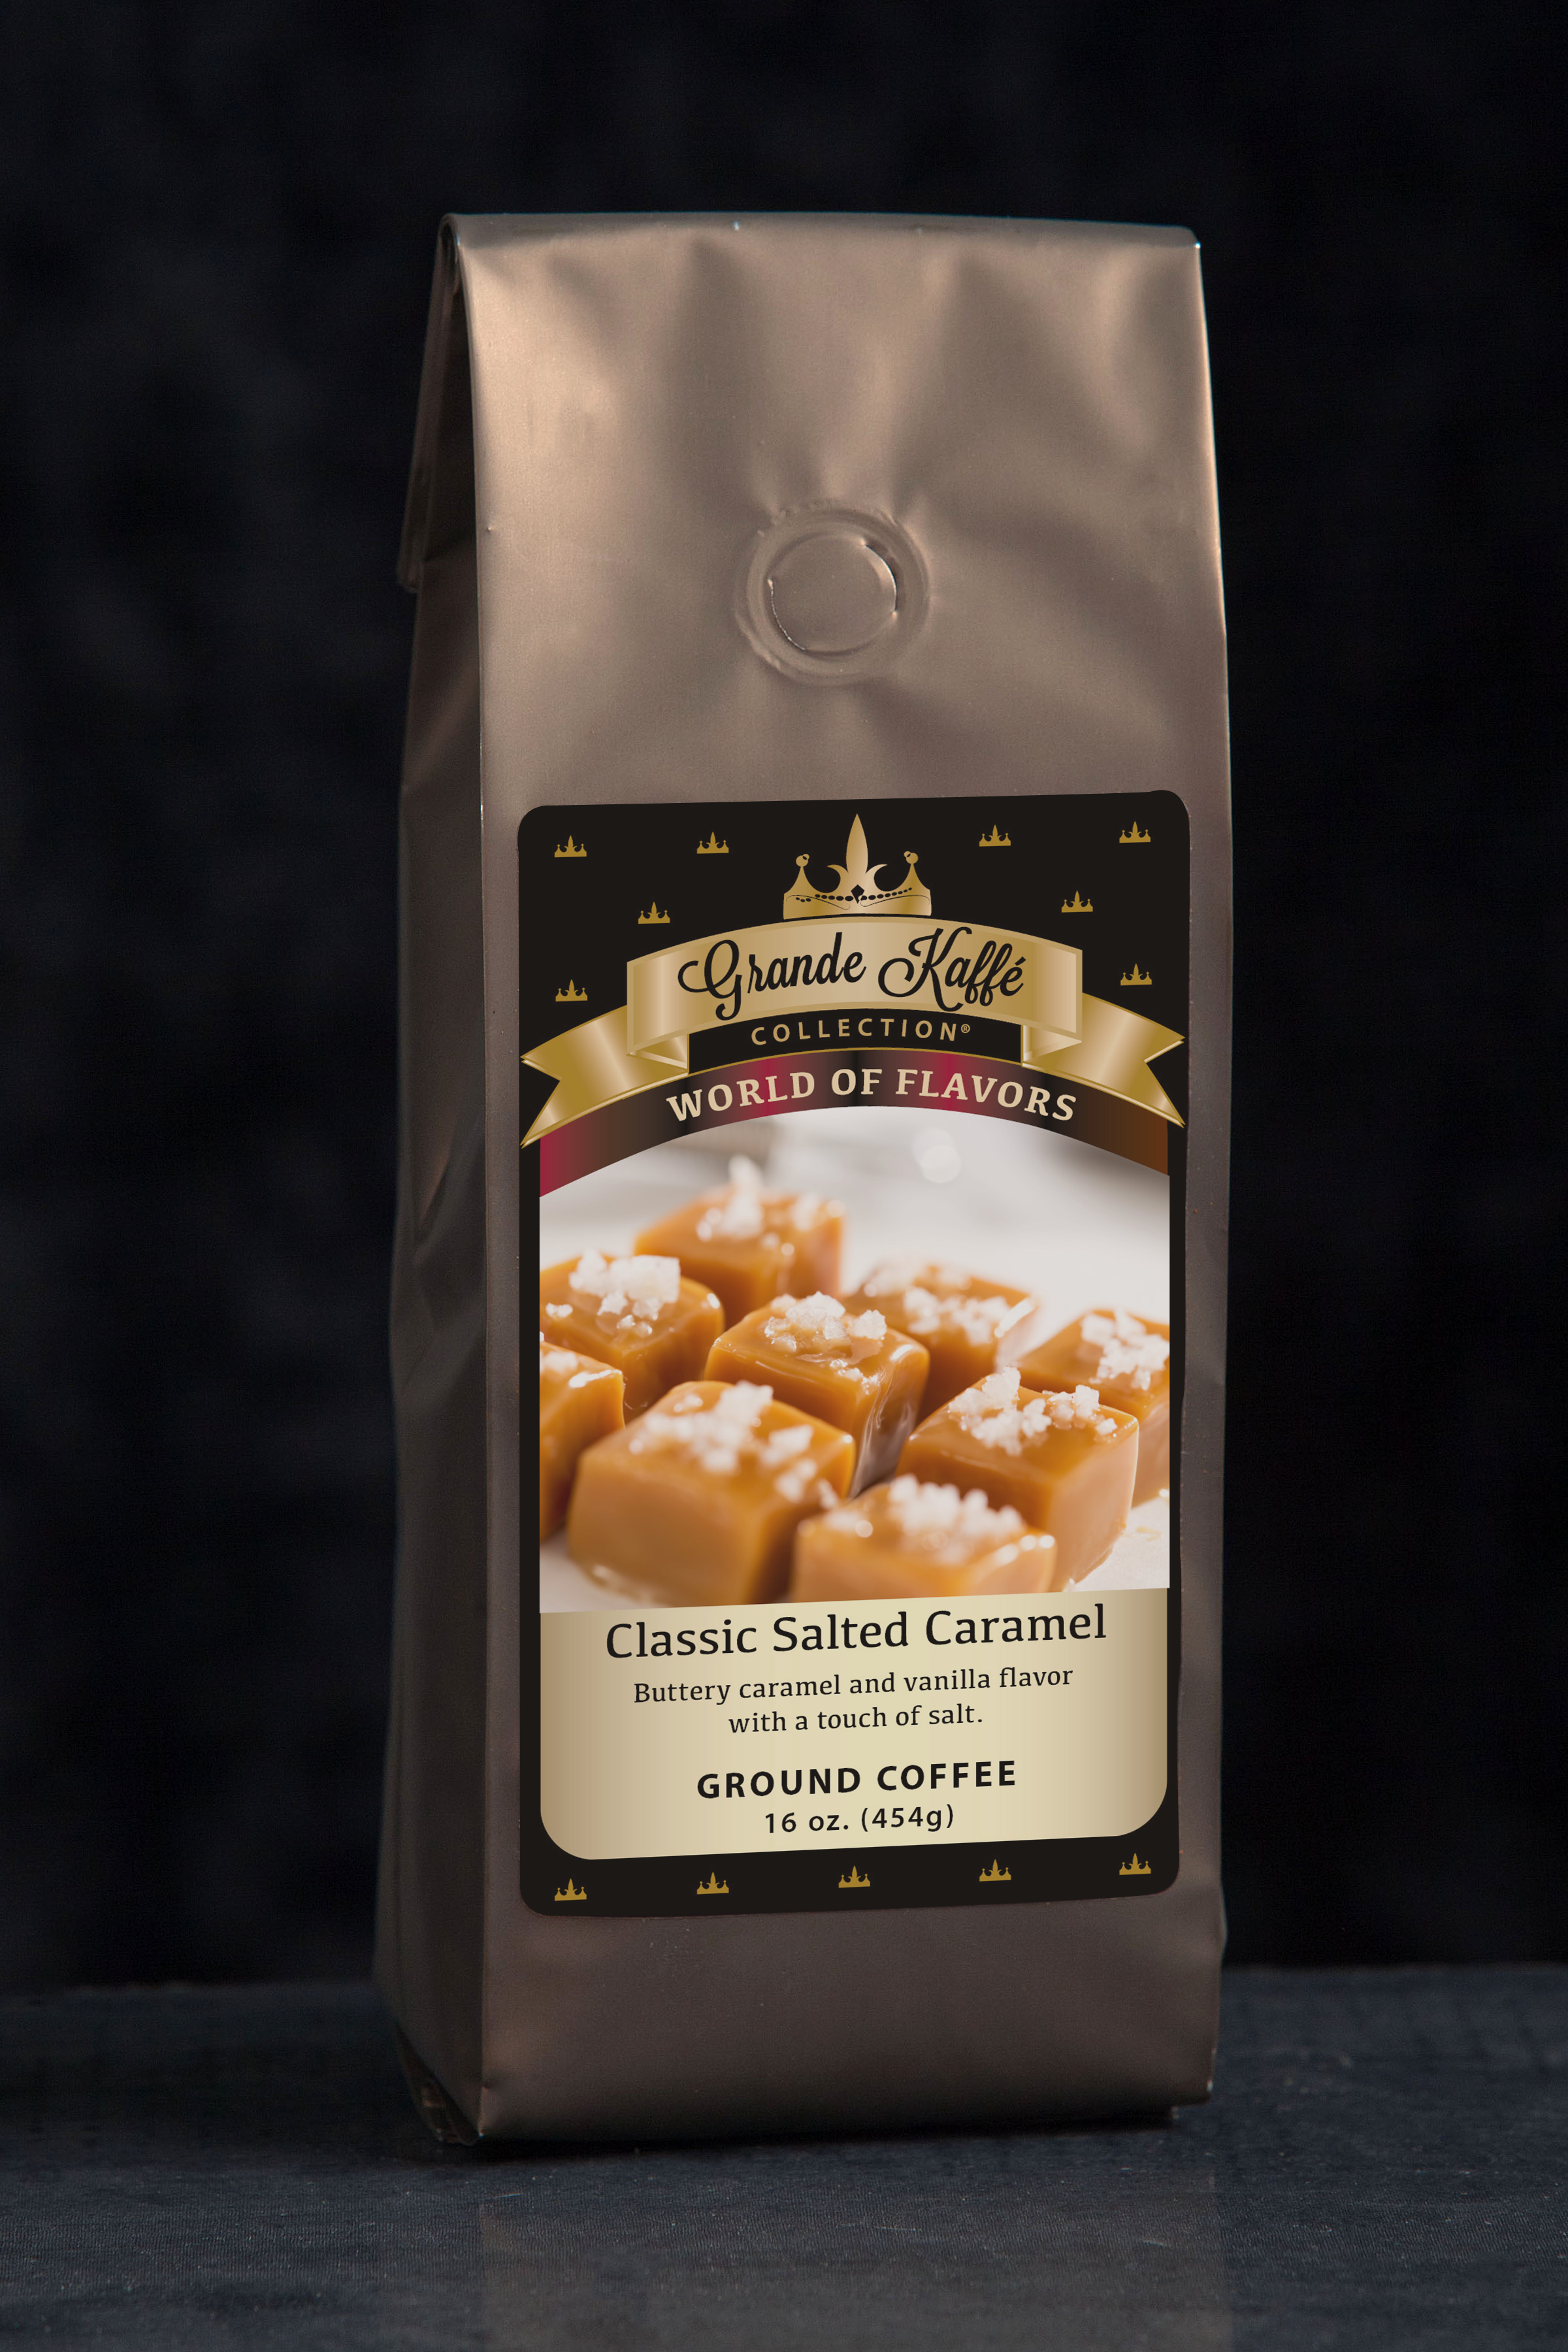 Classic Salted Caramel